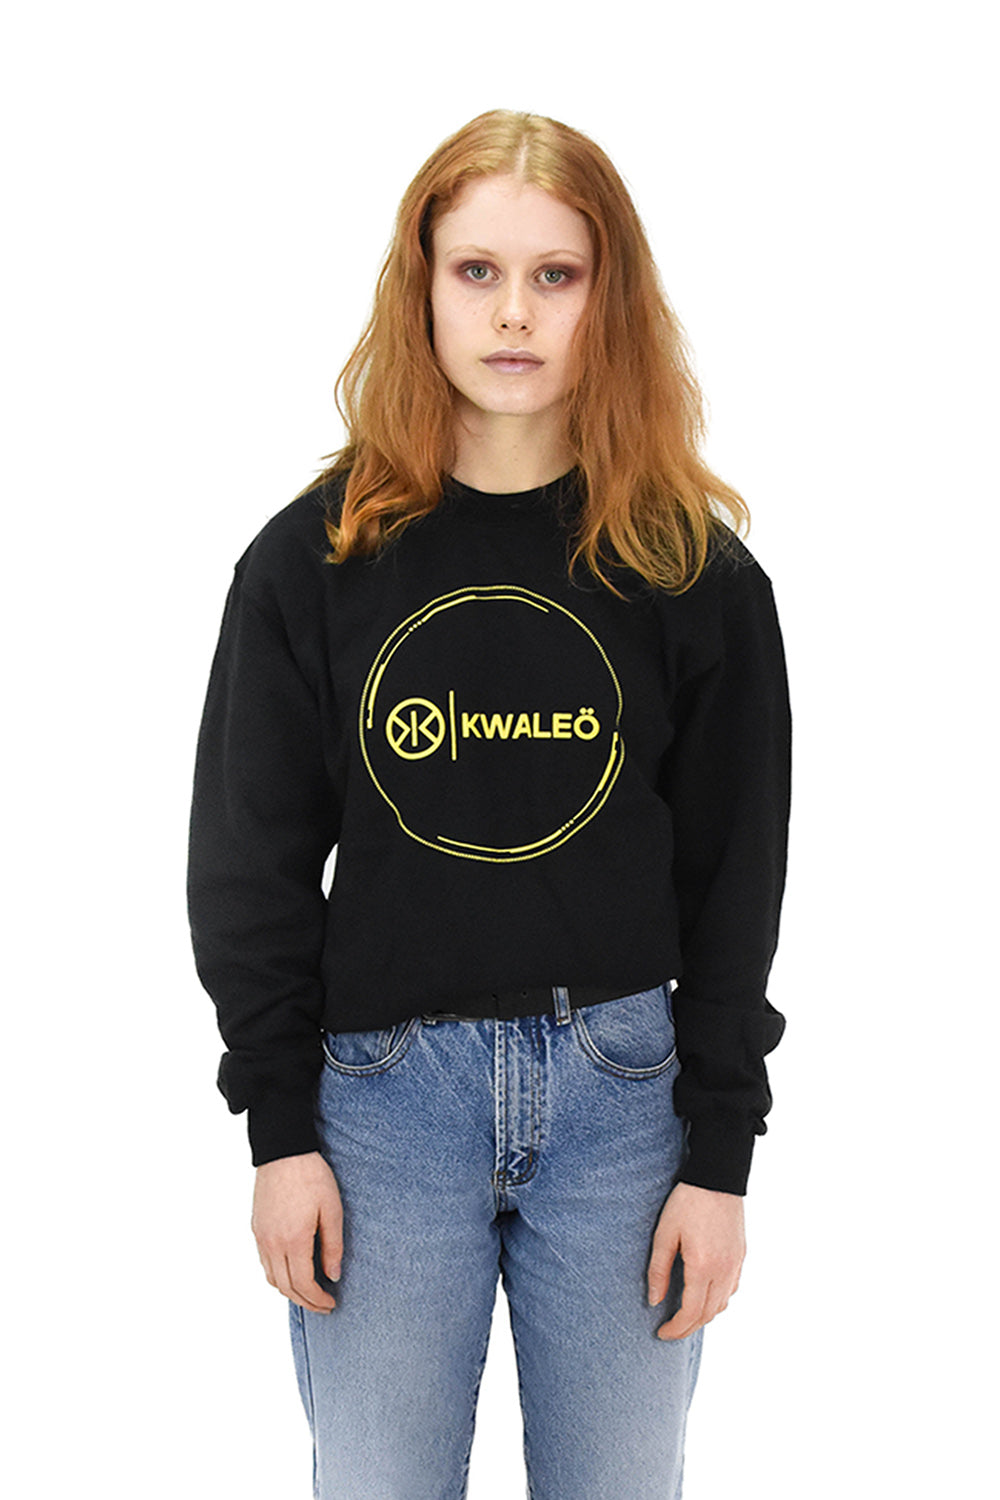 KWALEÖ FOCUS SWEATER